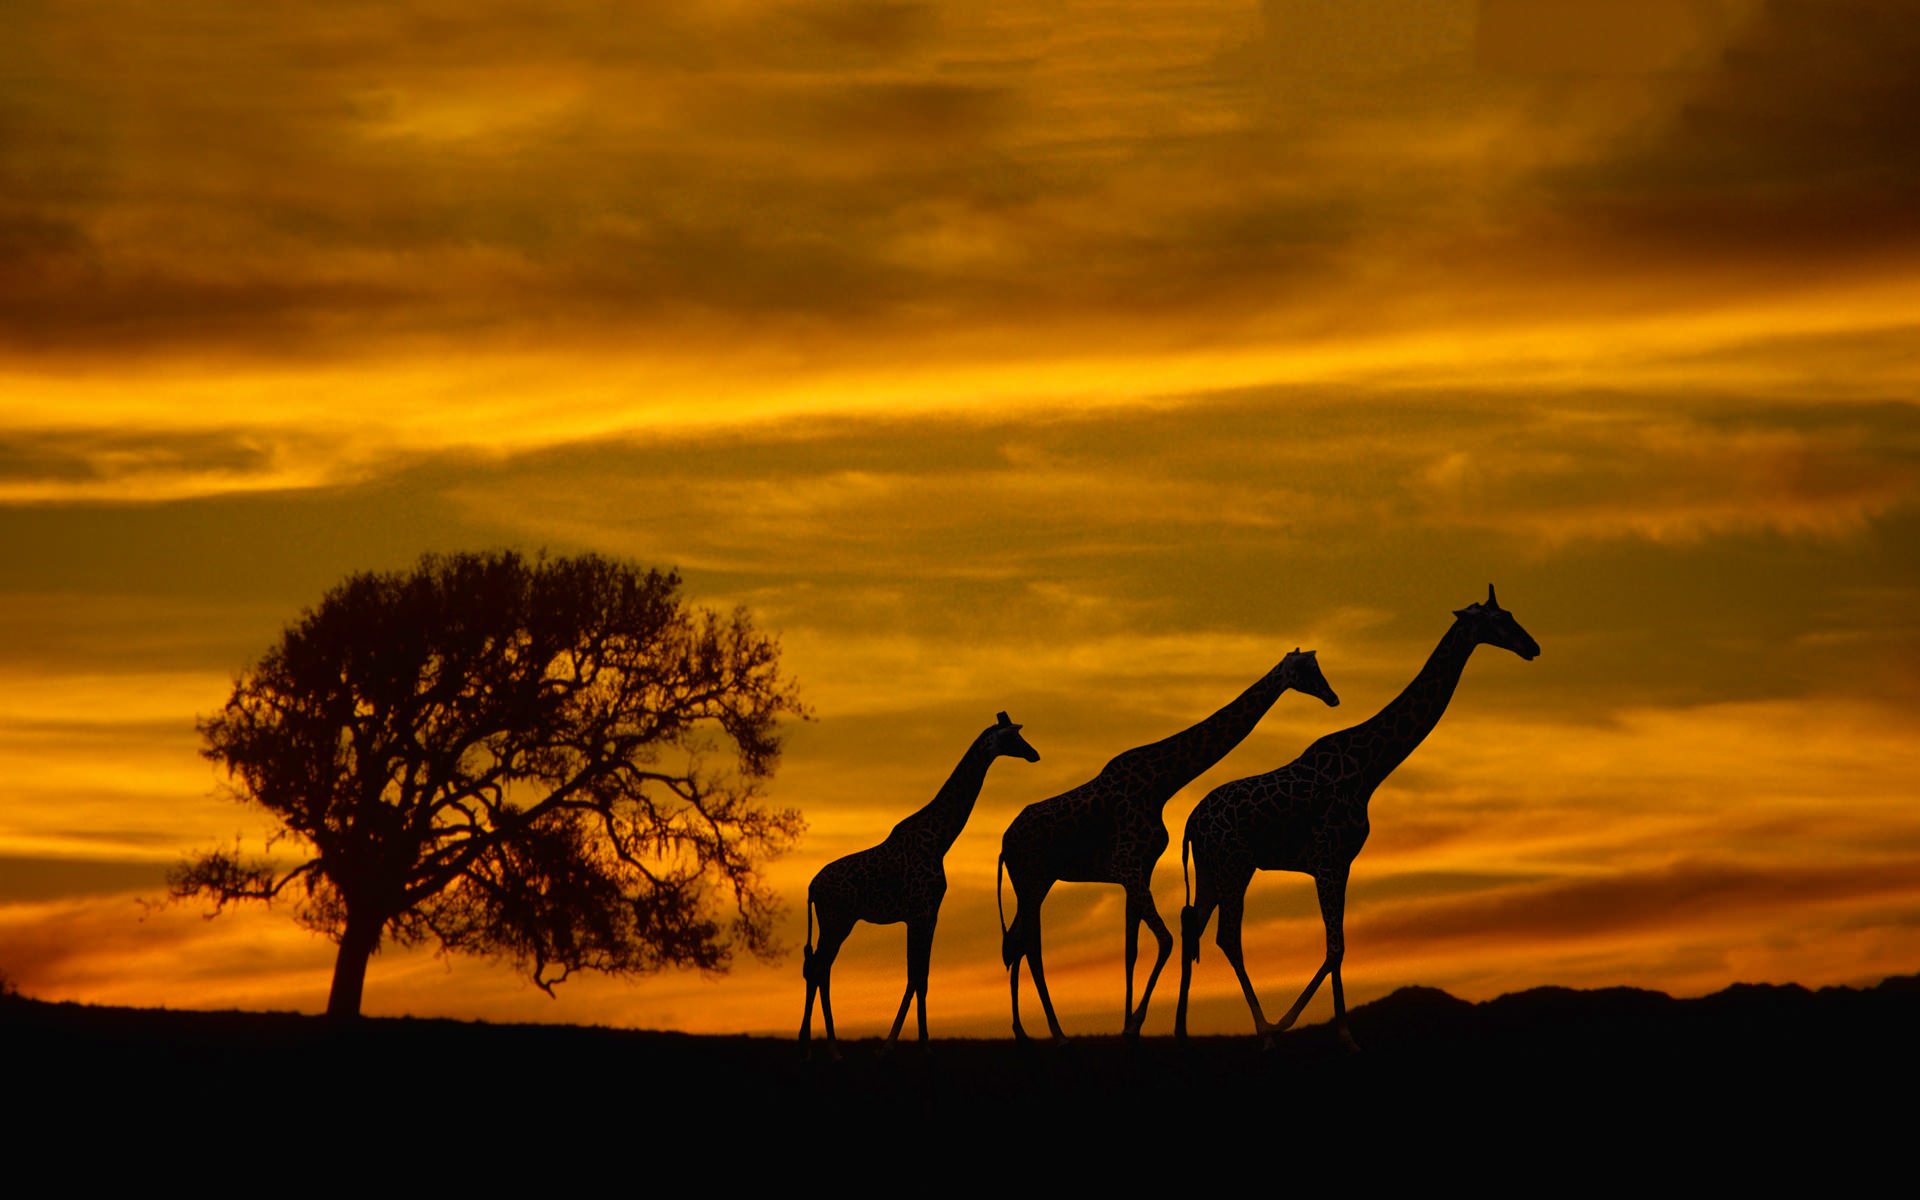 Giraffes family hd desktop wallpapers 4k hd - Family tree desktop wallpaper ...